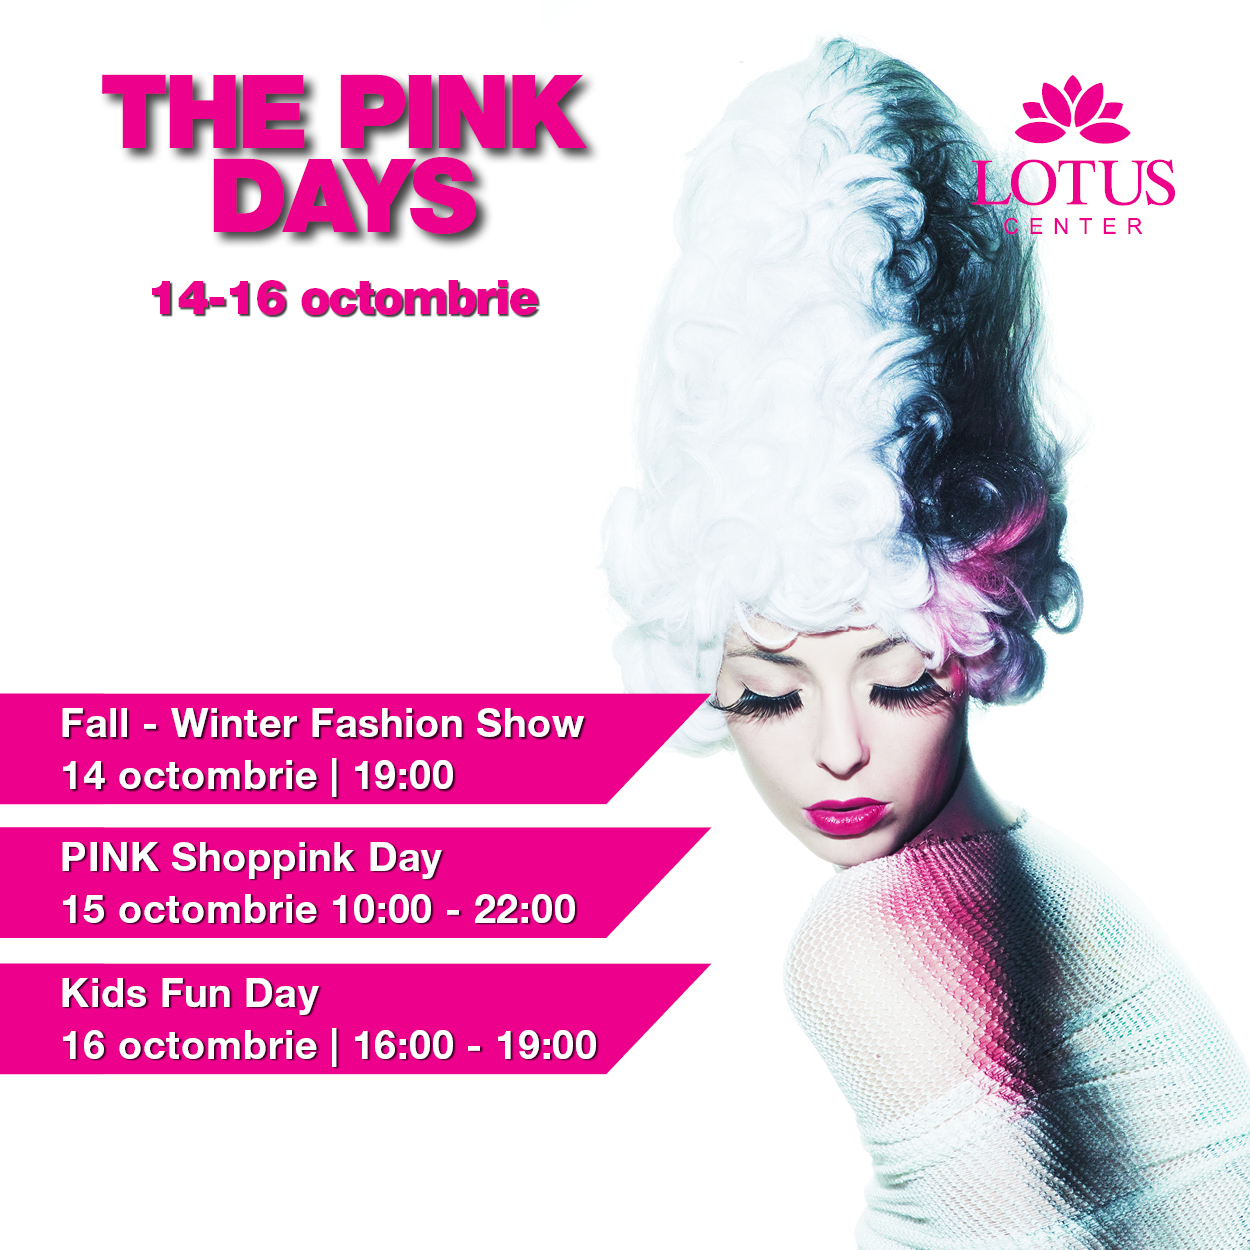 the pink days macheta generala 2016_2